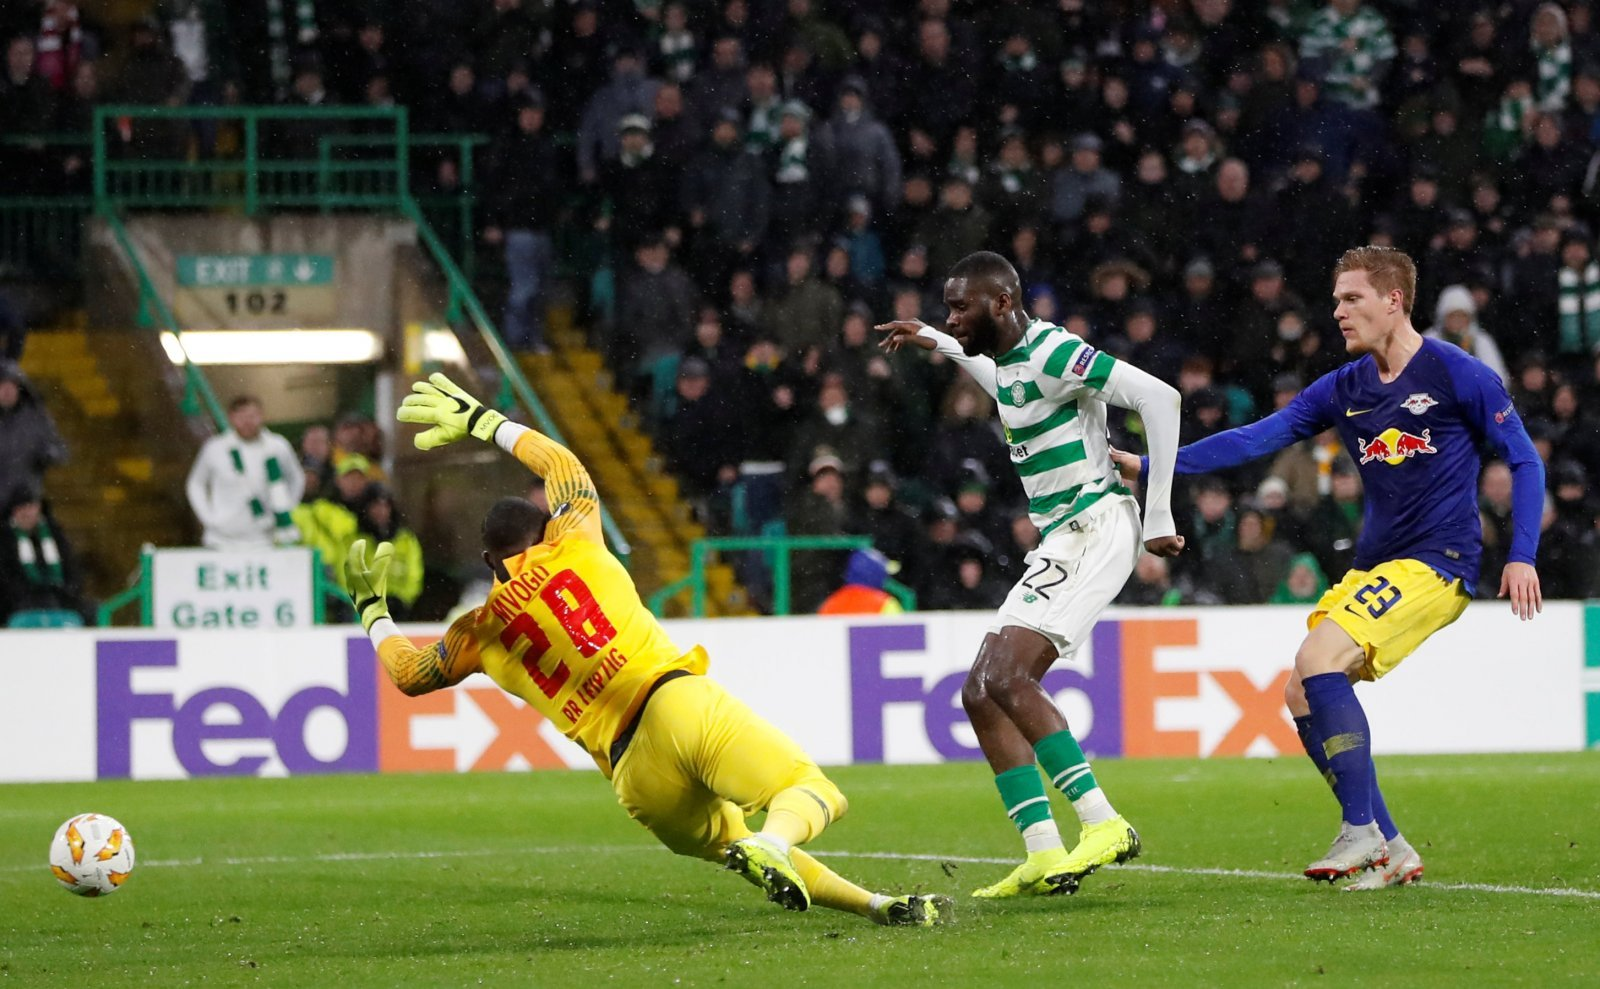 Celtic fans on Twitter were elated when Rodgers finally subbed Edouard